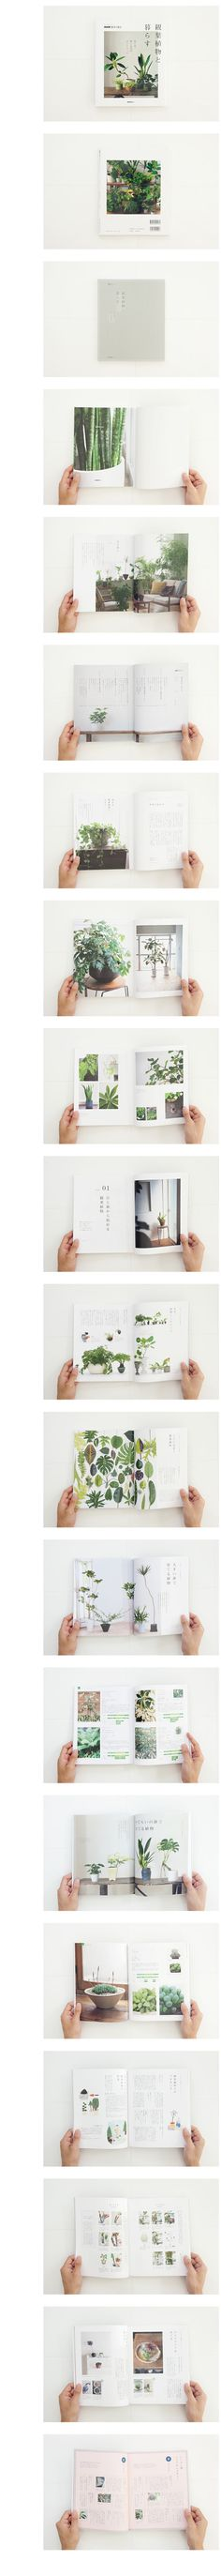 Super sweet brochure design. Really like the colour scheme and use of white space.